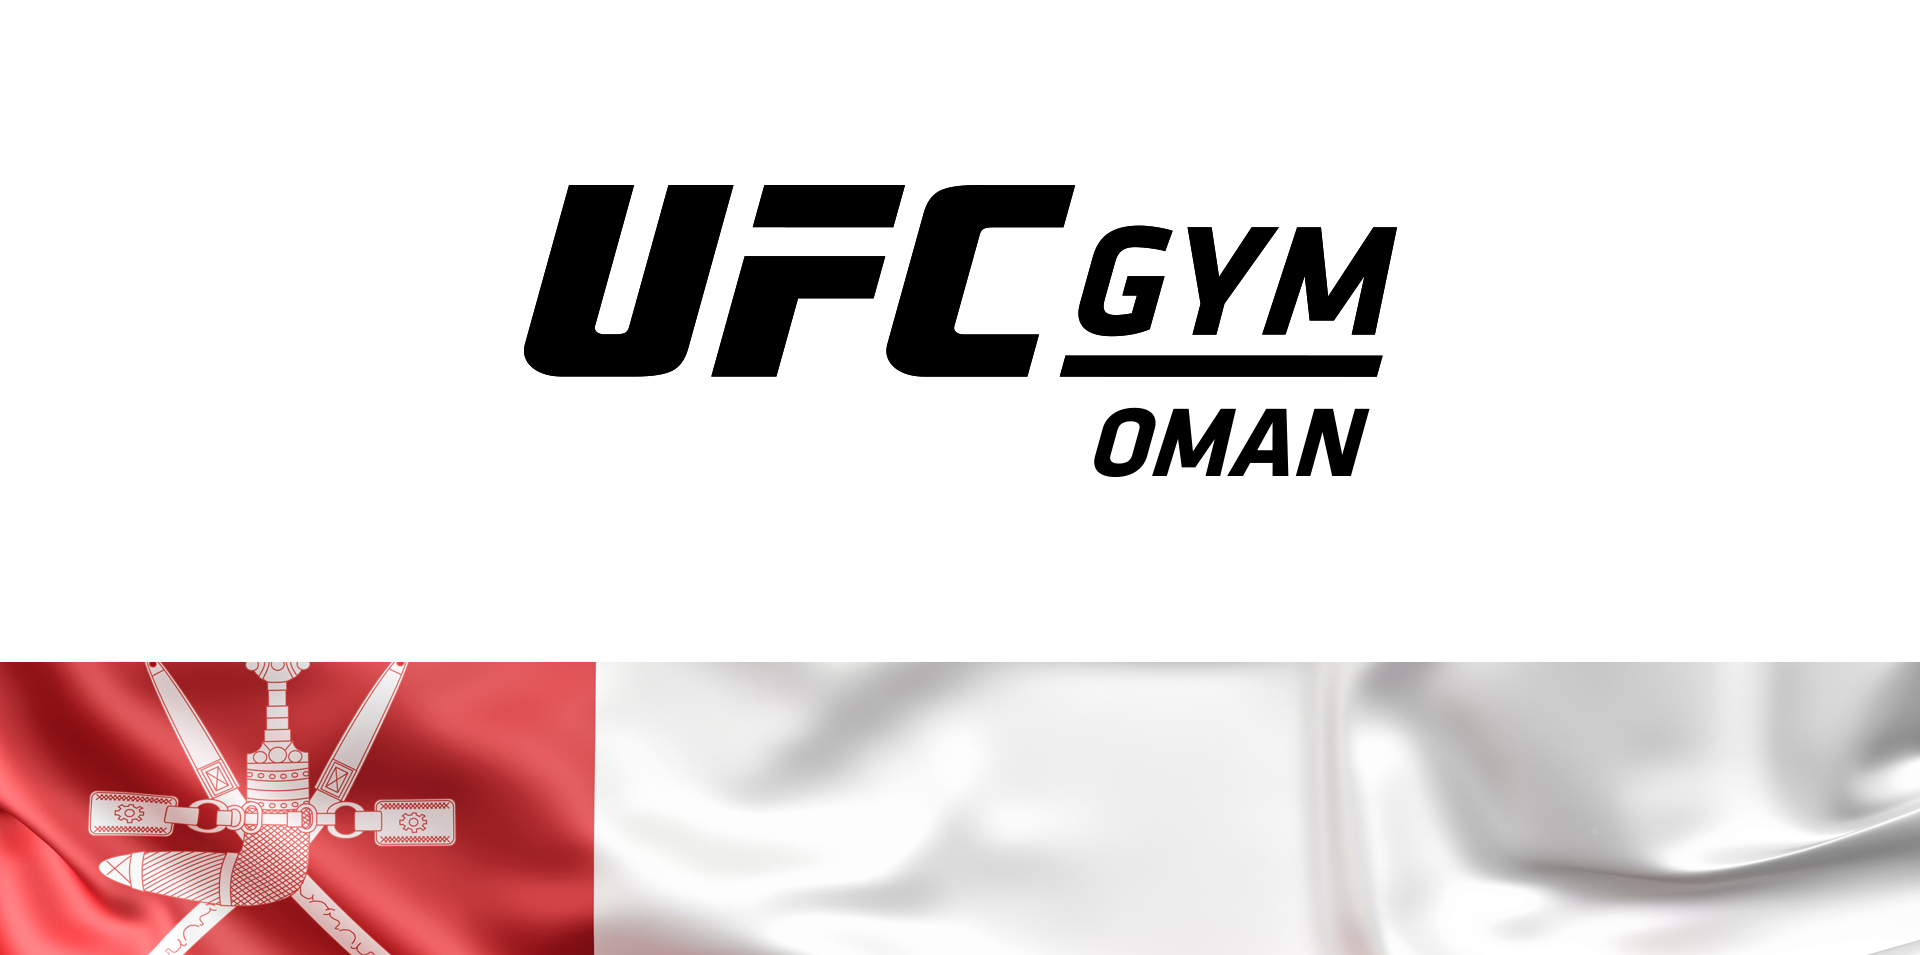 Oman Featured Image